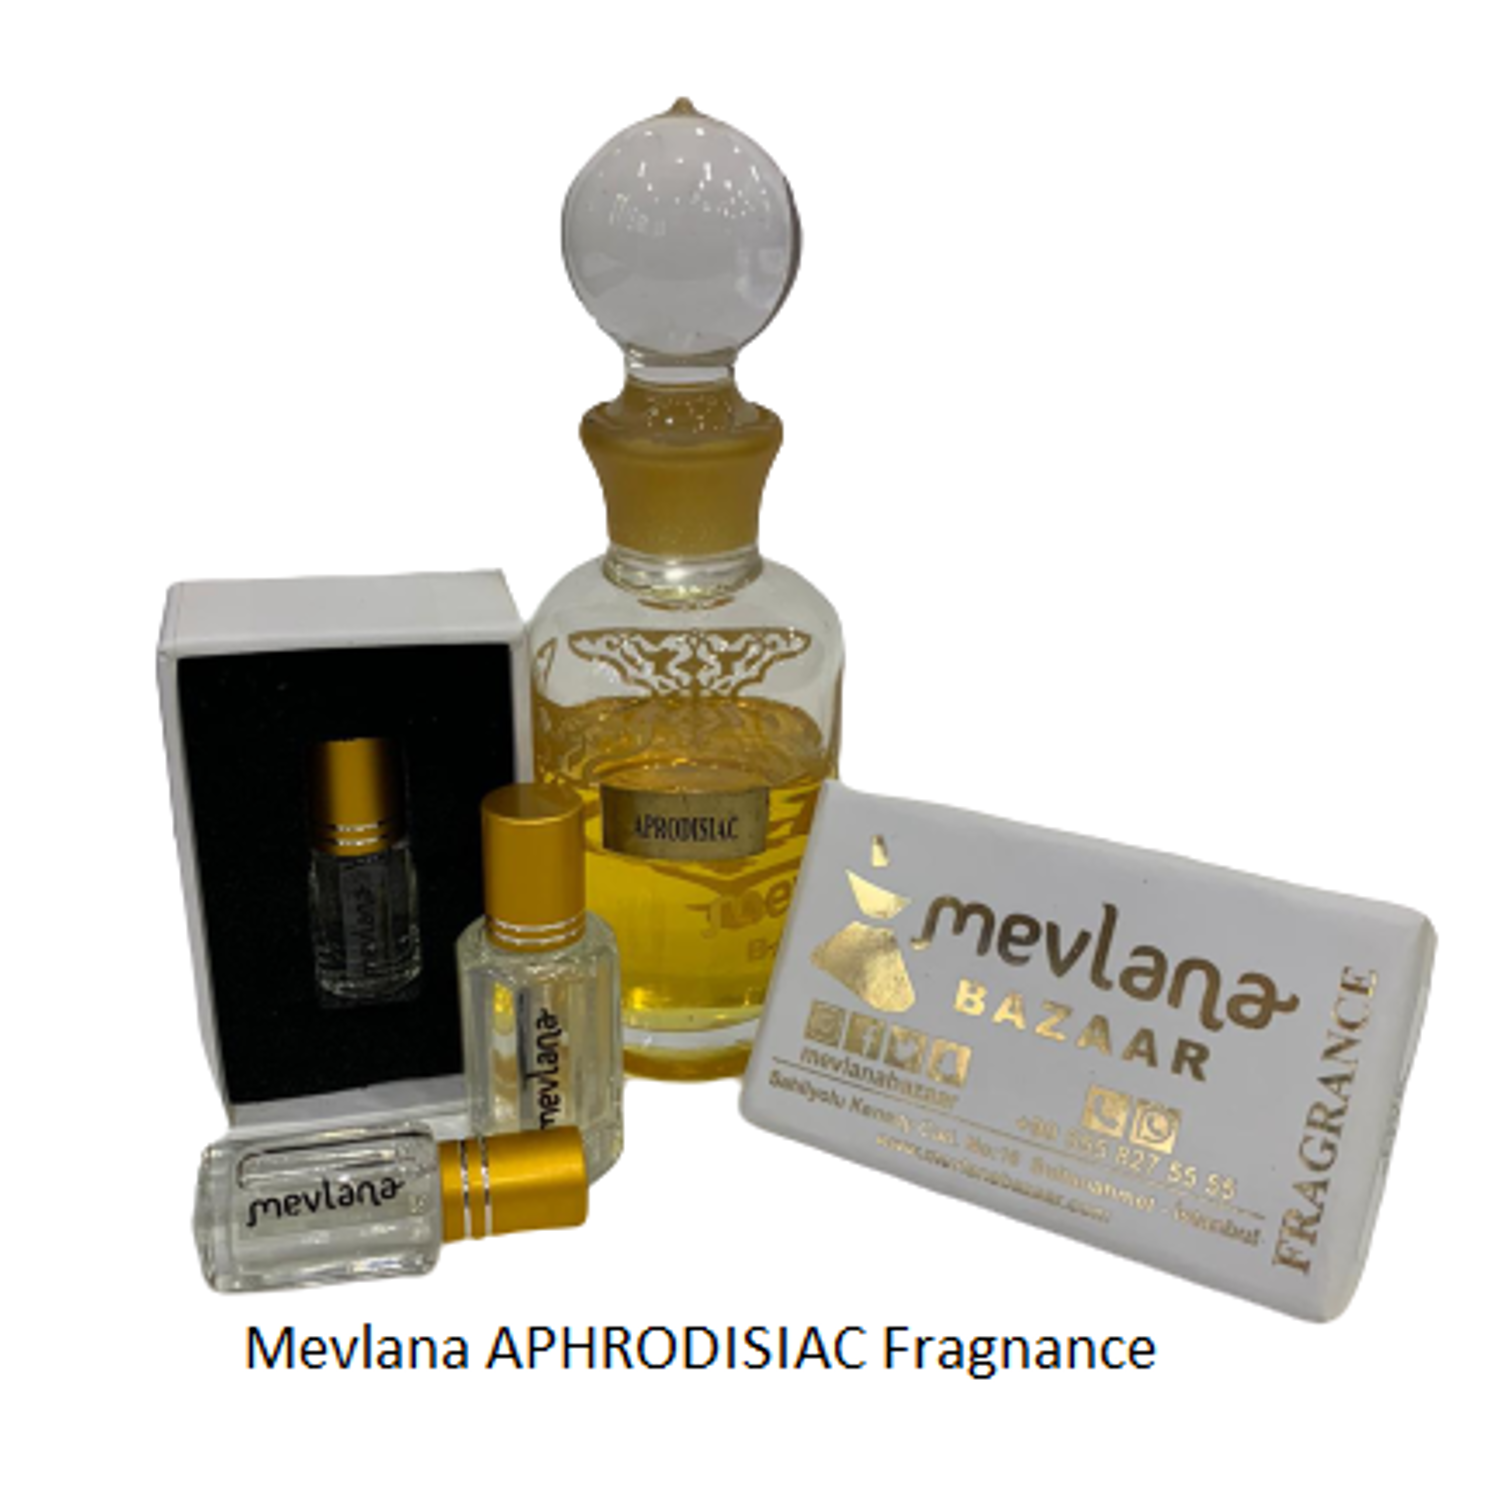 Picture of MEVLANA FRAGNANCE APHRODISIAC